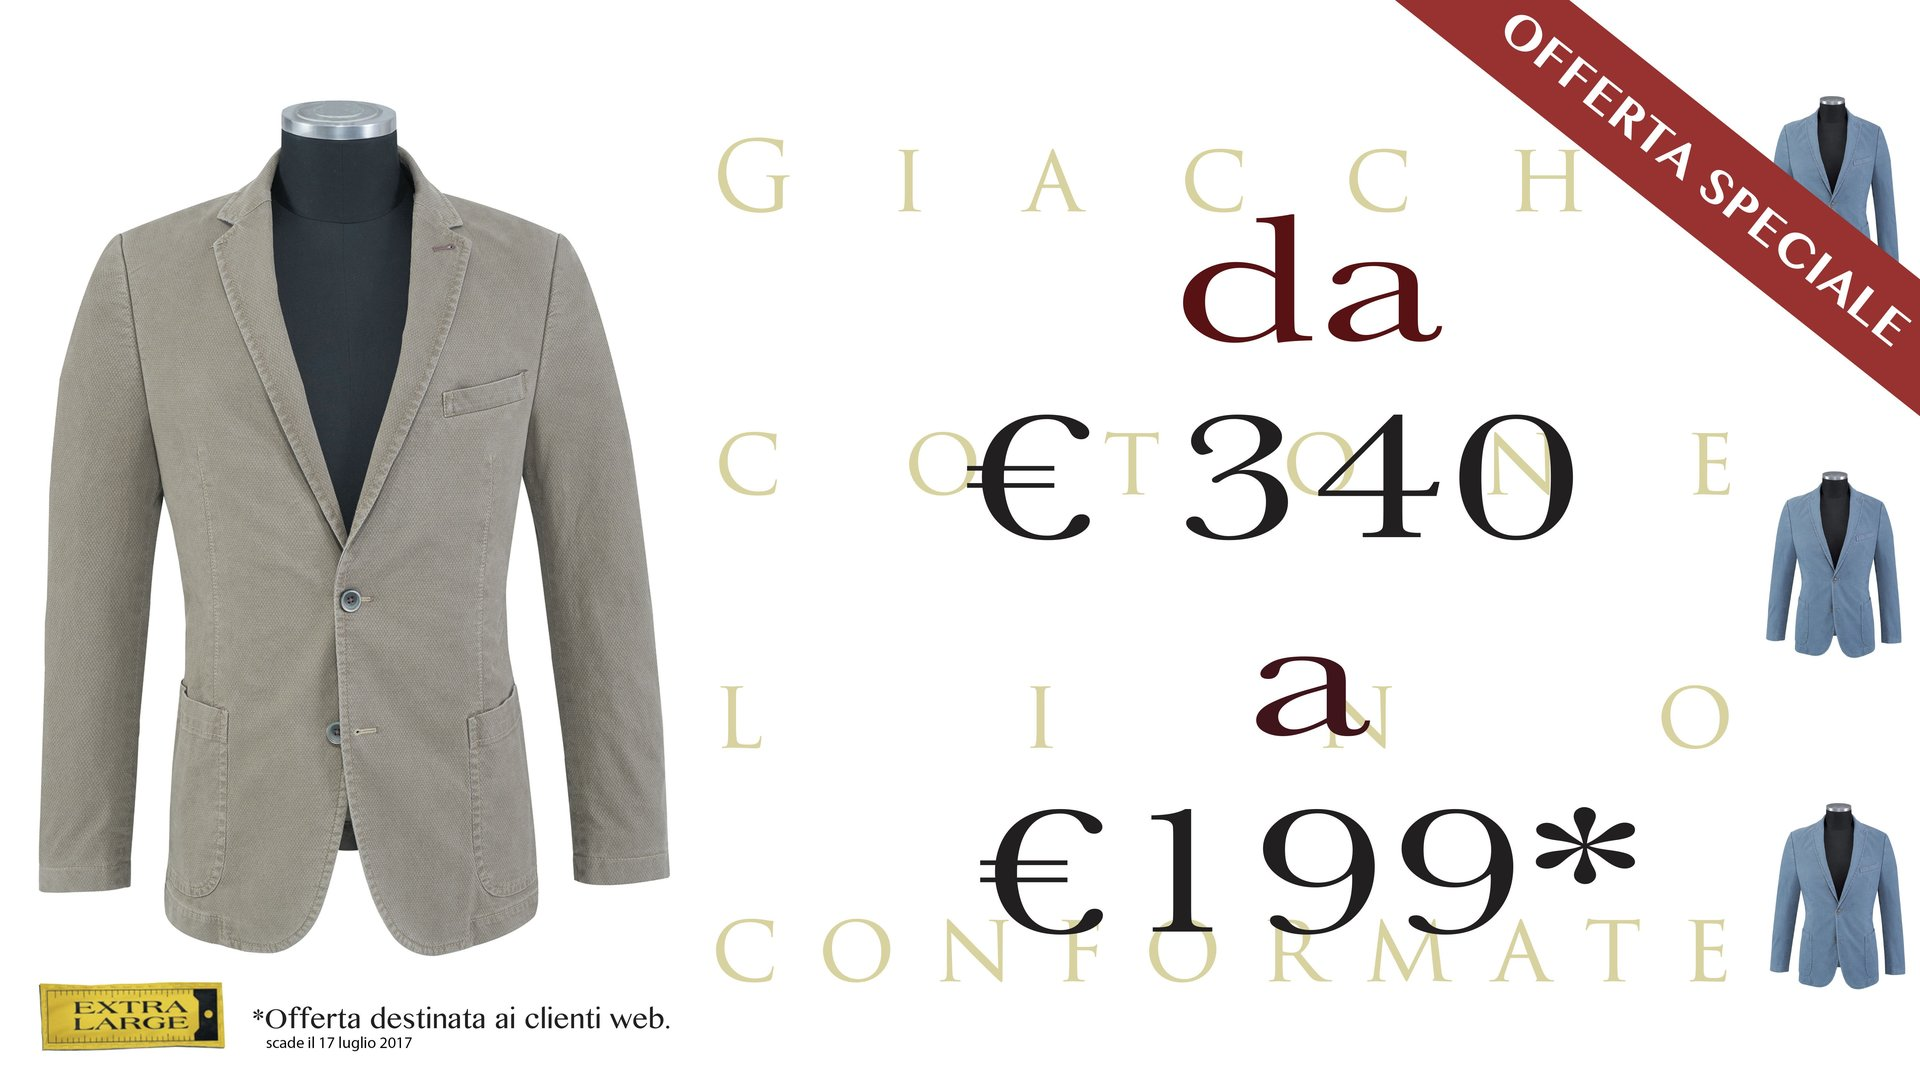 giacche in offerta speciale